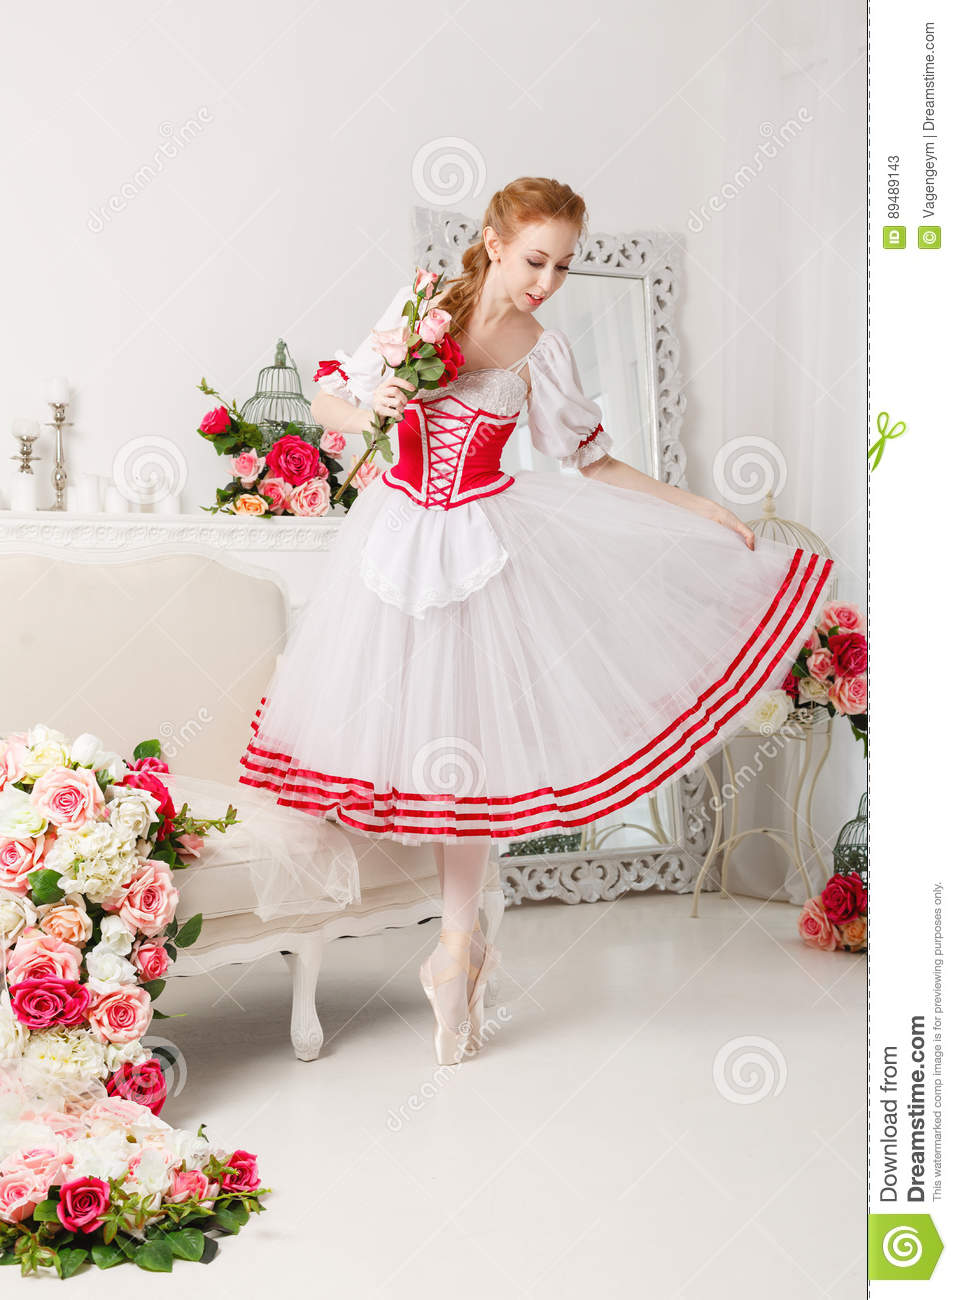 Cute Ballerina Holding Flowers Stock Image Image Of Jump Girl